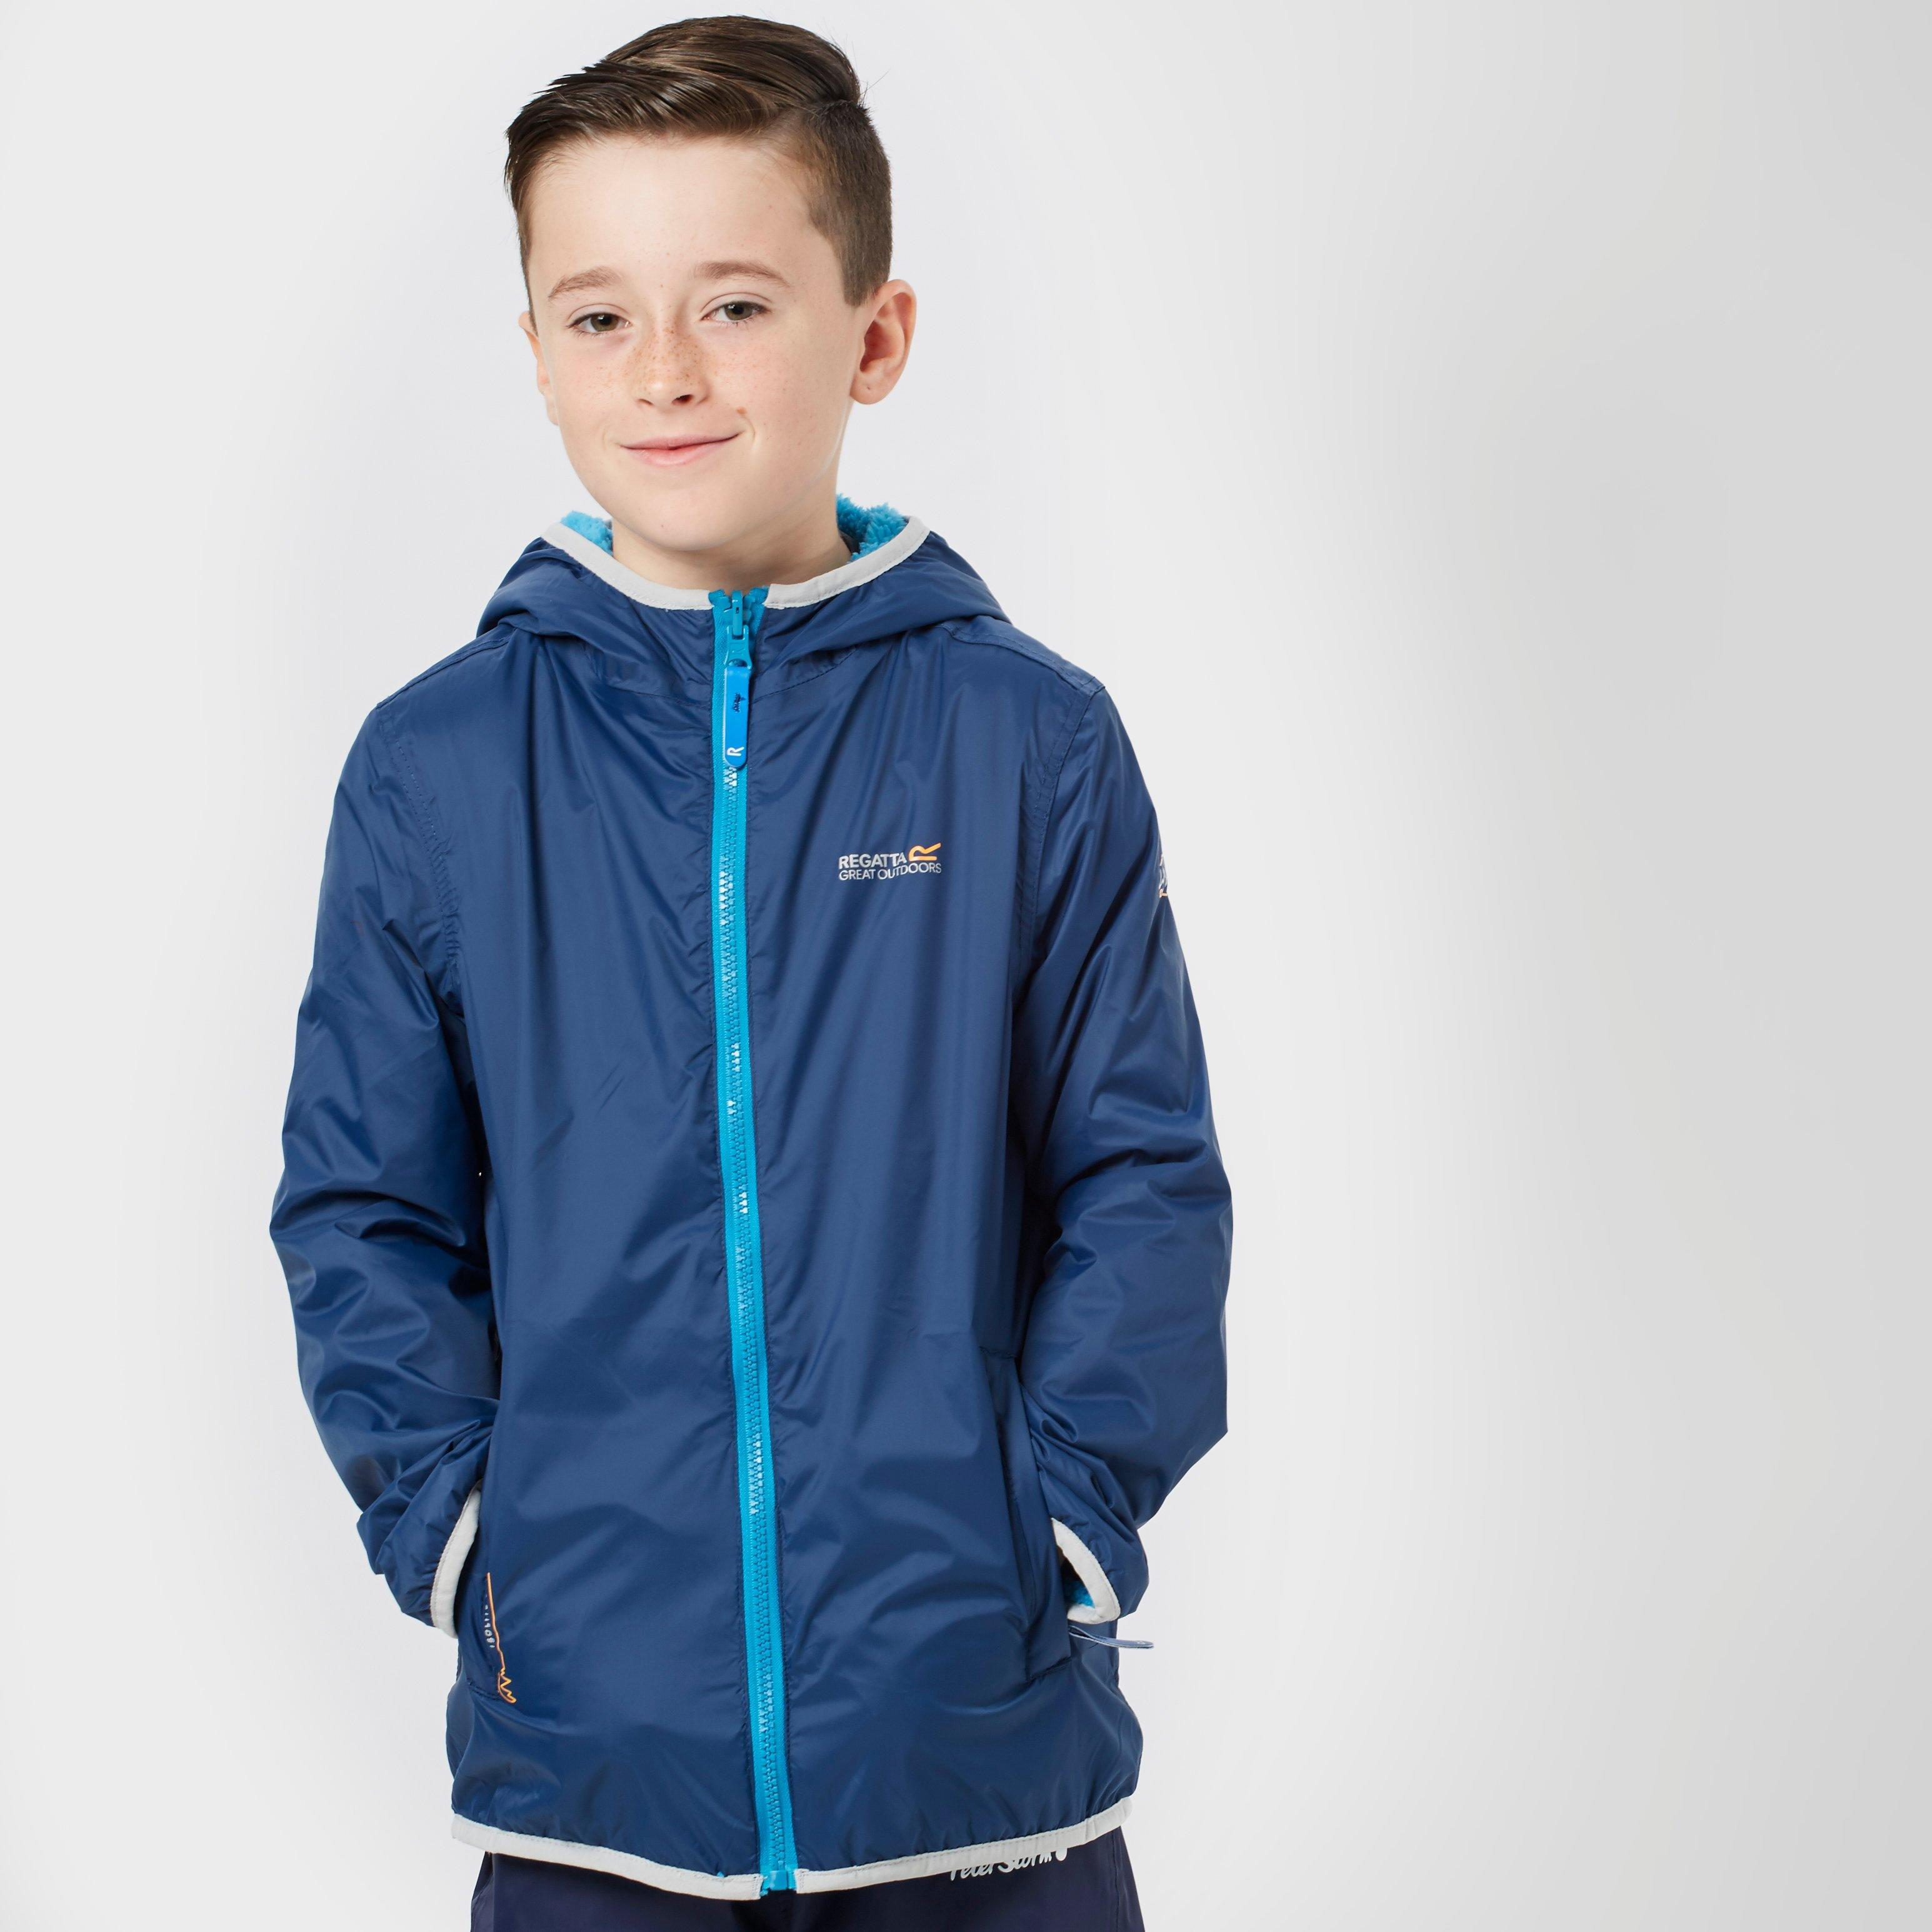 Regatta Boys Lagoona Reversible Jacket  Blue Blue